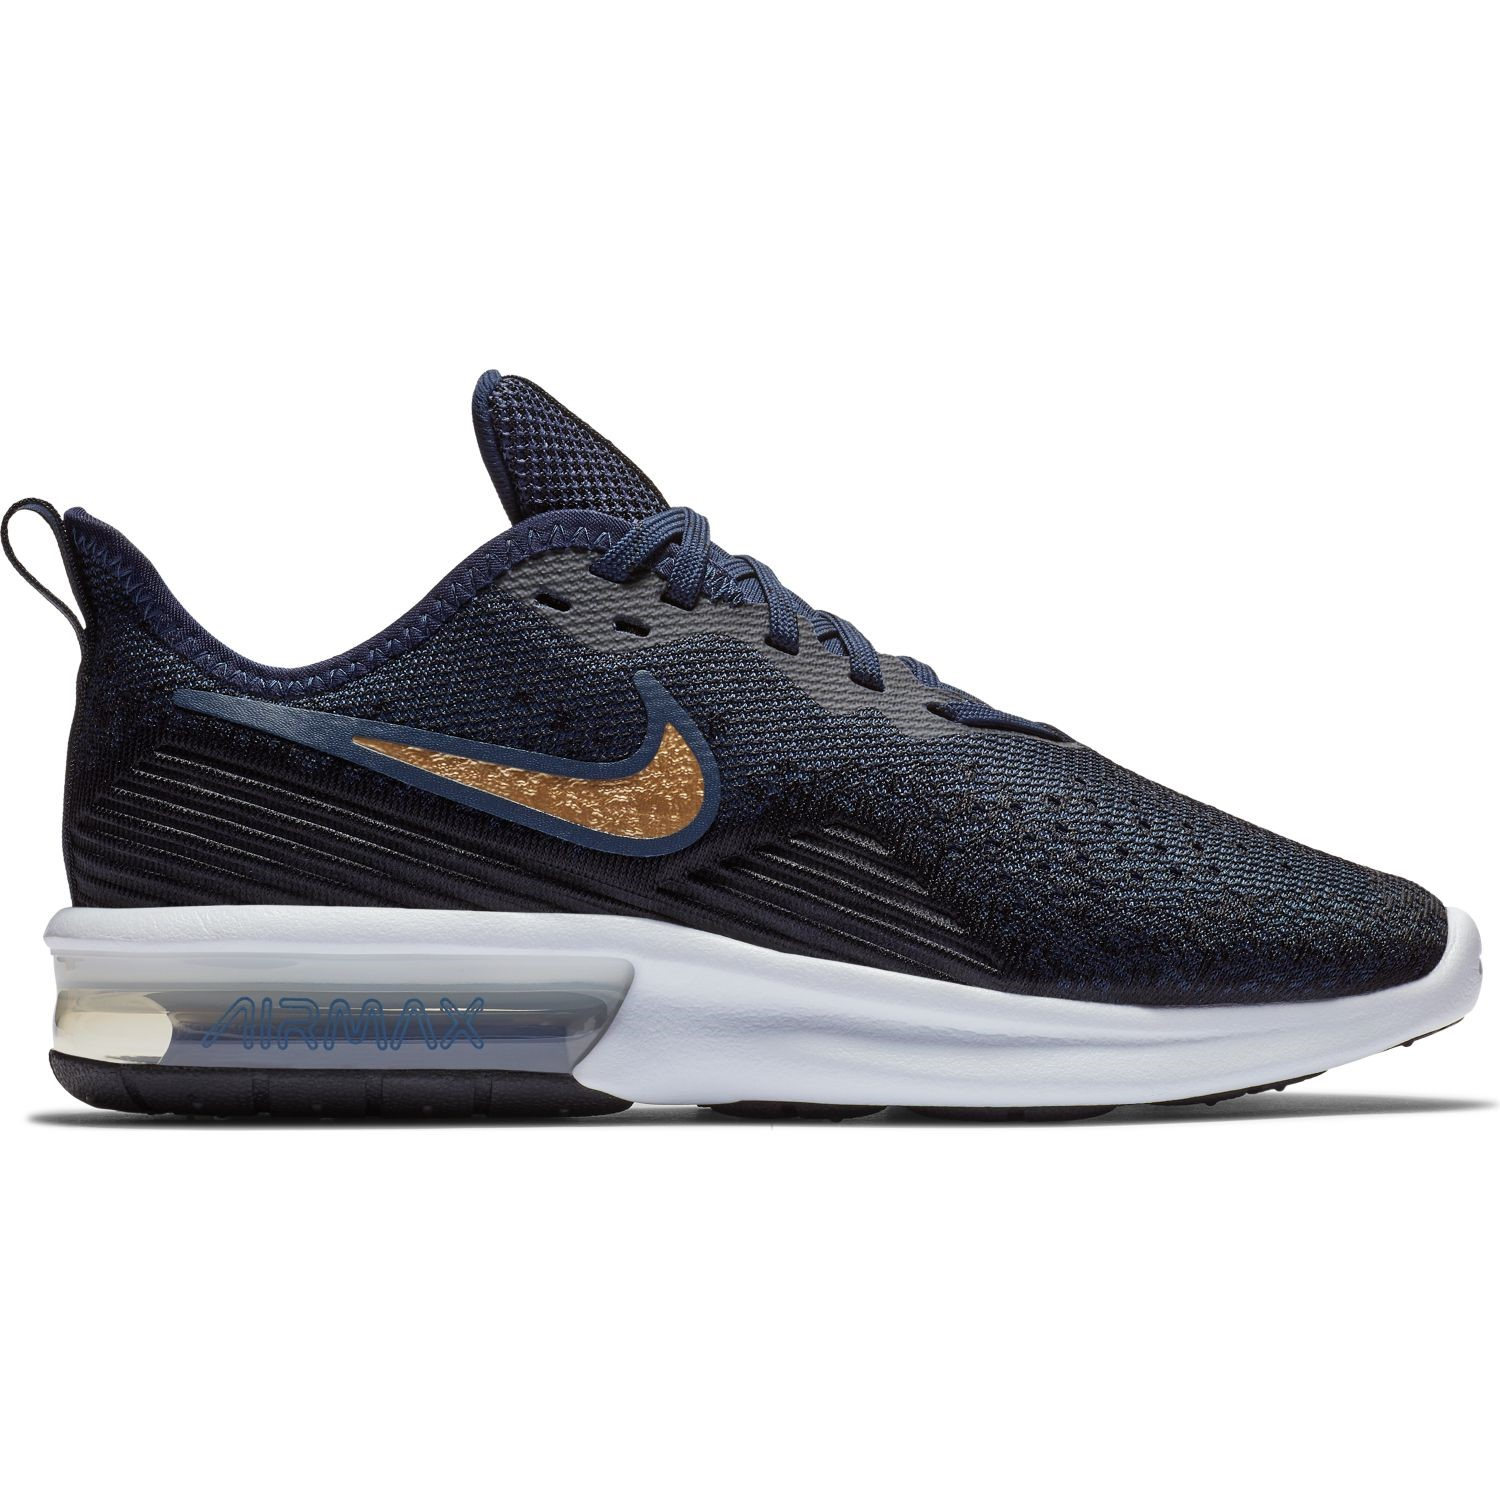 2571b82b4d1c Nike Air Max Sequent 4 - Womens Sneakers - Black Metallic Gold Obsidian